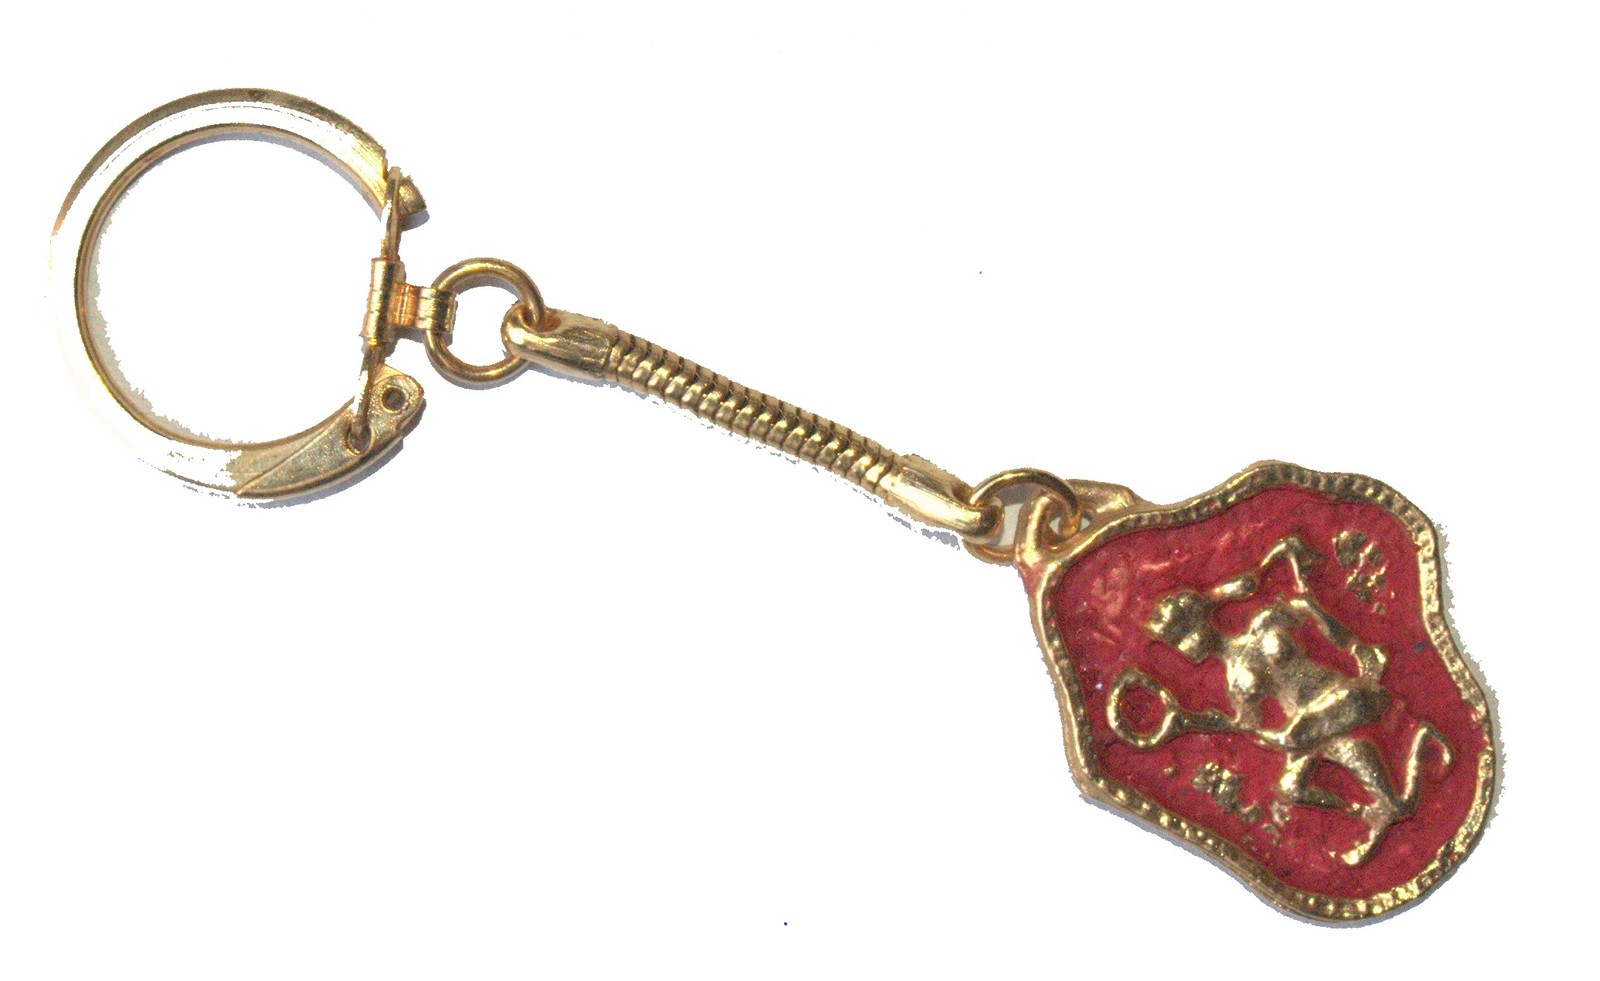 Vintage Zodiac Aquarius Bezalel Key Chain Holder Israel Souvenir Original Pack